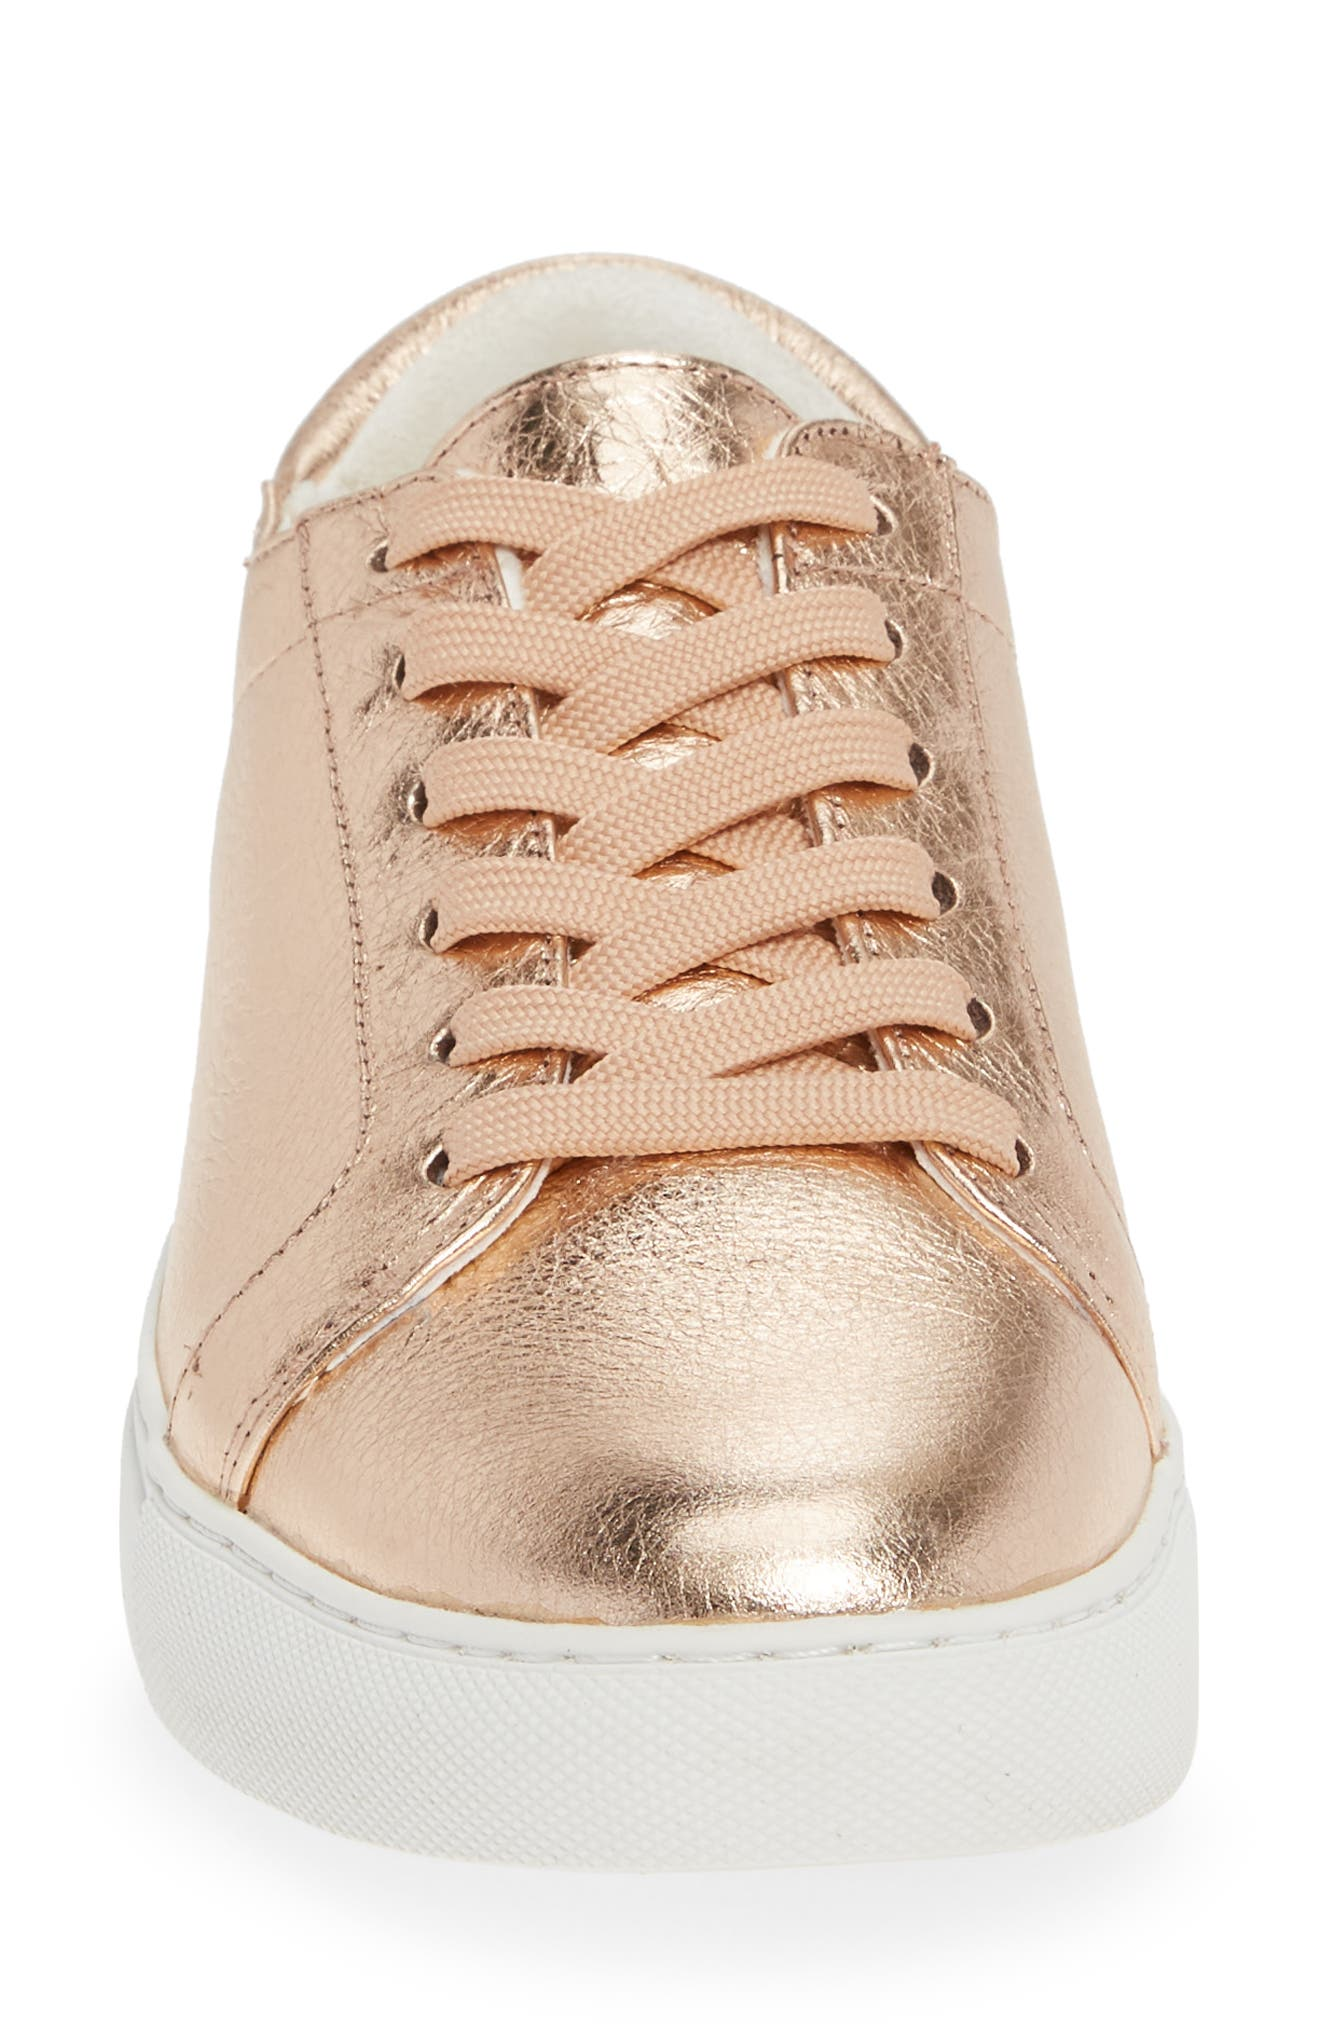 KENNETH COLE NEW YORK, 'Kam' Sneaker, Alternate thumbnail 4, color, ROSE GOLD LEATHER